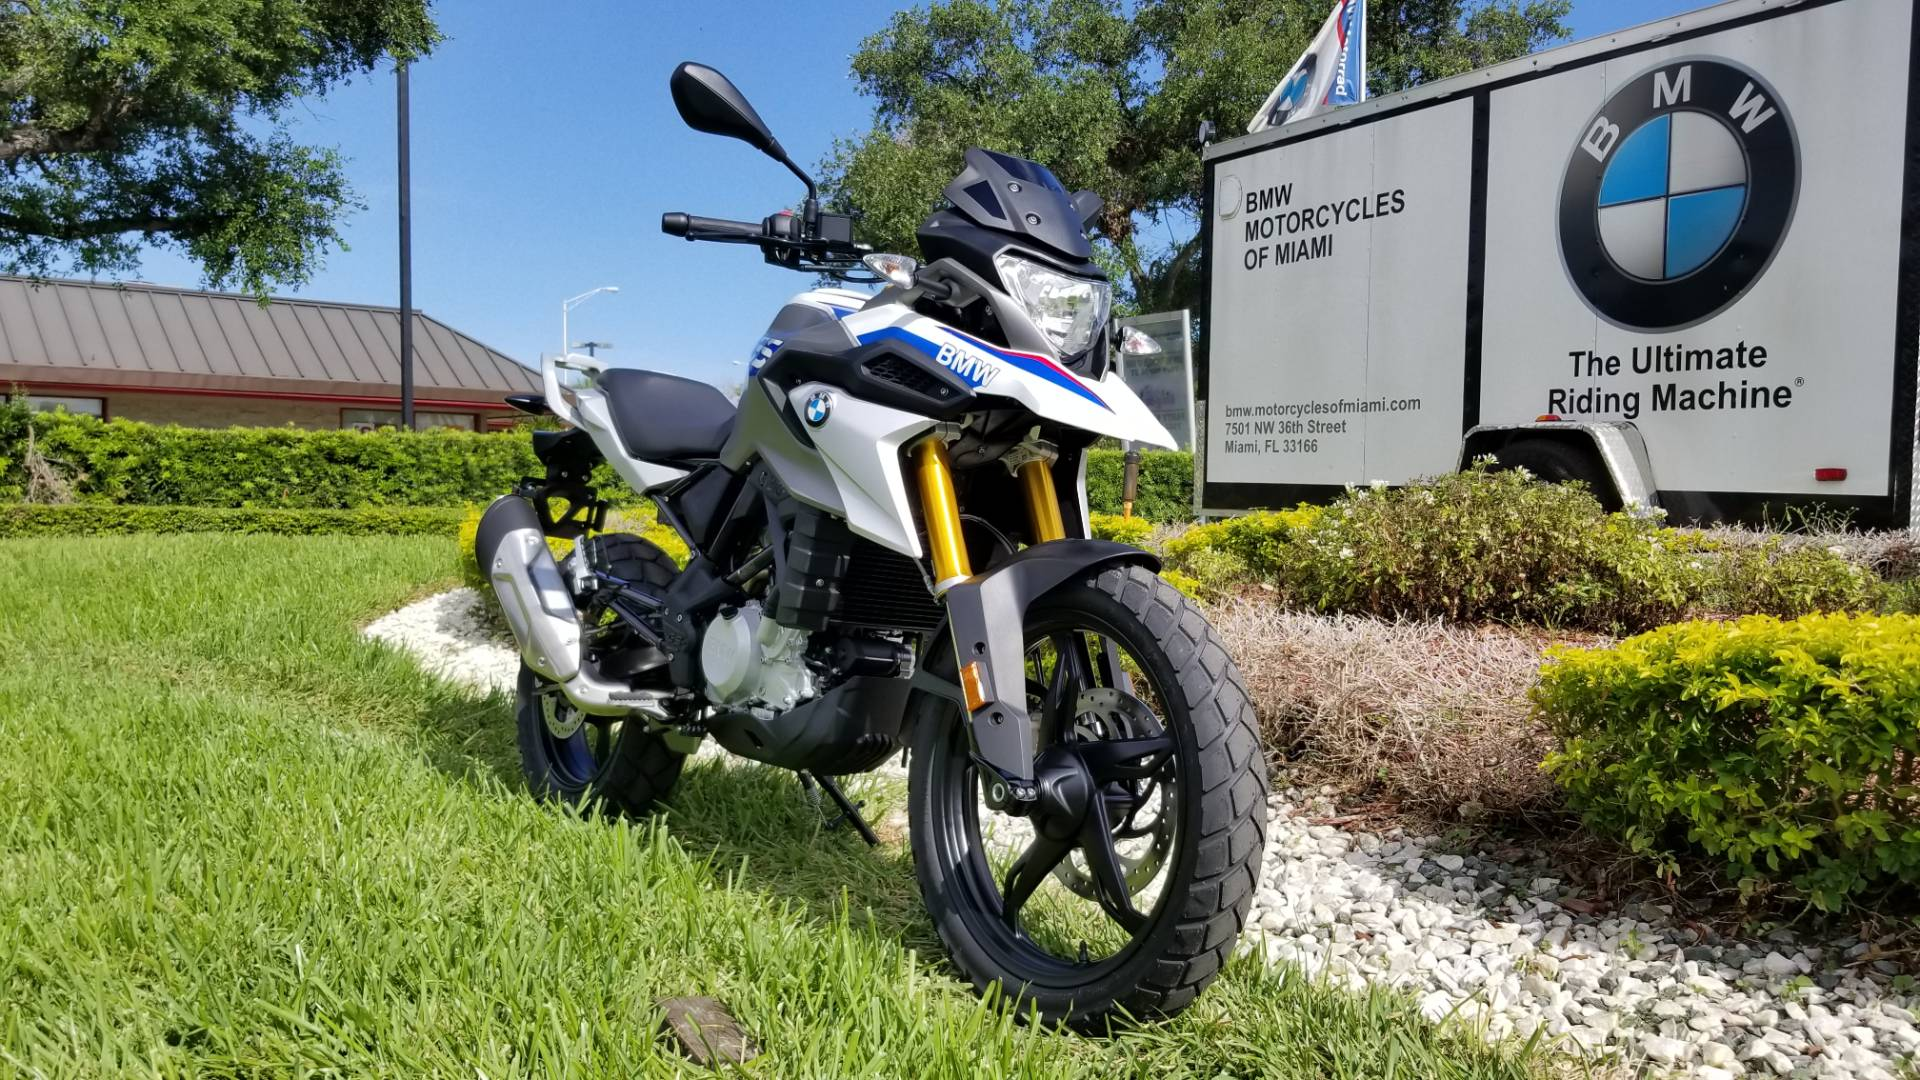 New 2019 BMW G 310 GS for sale, BMW G 310GS for sale, BMW Motorcycle G310GS, new BMW 310, Dual, BMW. BMW Motorcycles of Miami, Motorcycles of Miami, Motorcycles Miami, New Motorcycles, Used Motorcycles, pre-owned. #BMWMotorcyclesOfMiami #MotorcyclesOfMiami - Photo 10